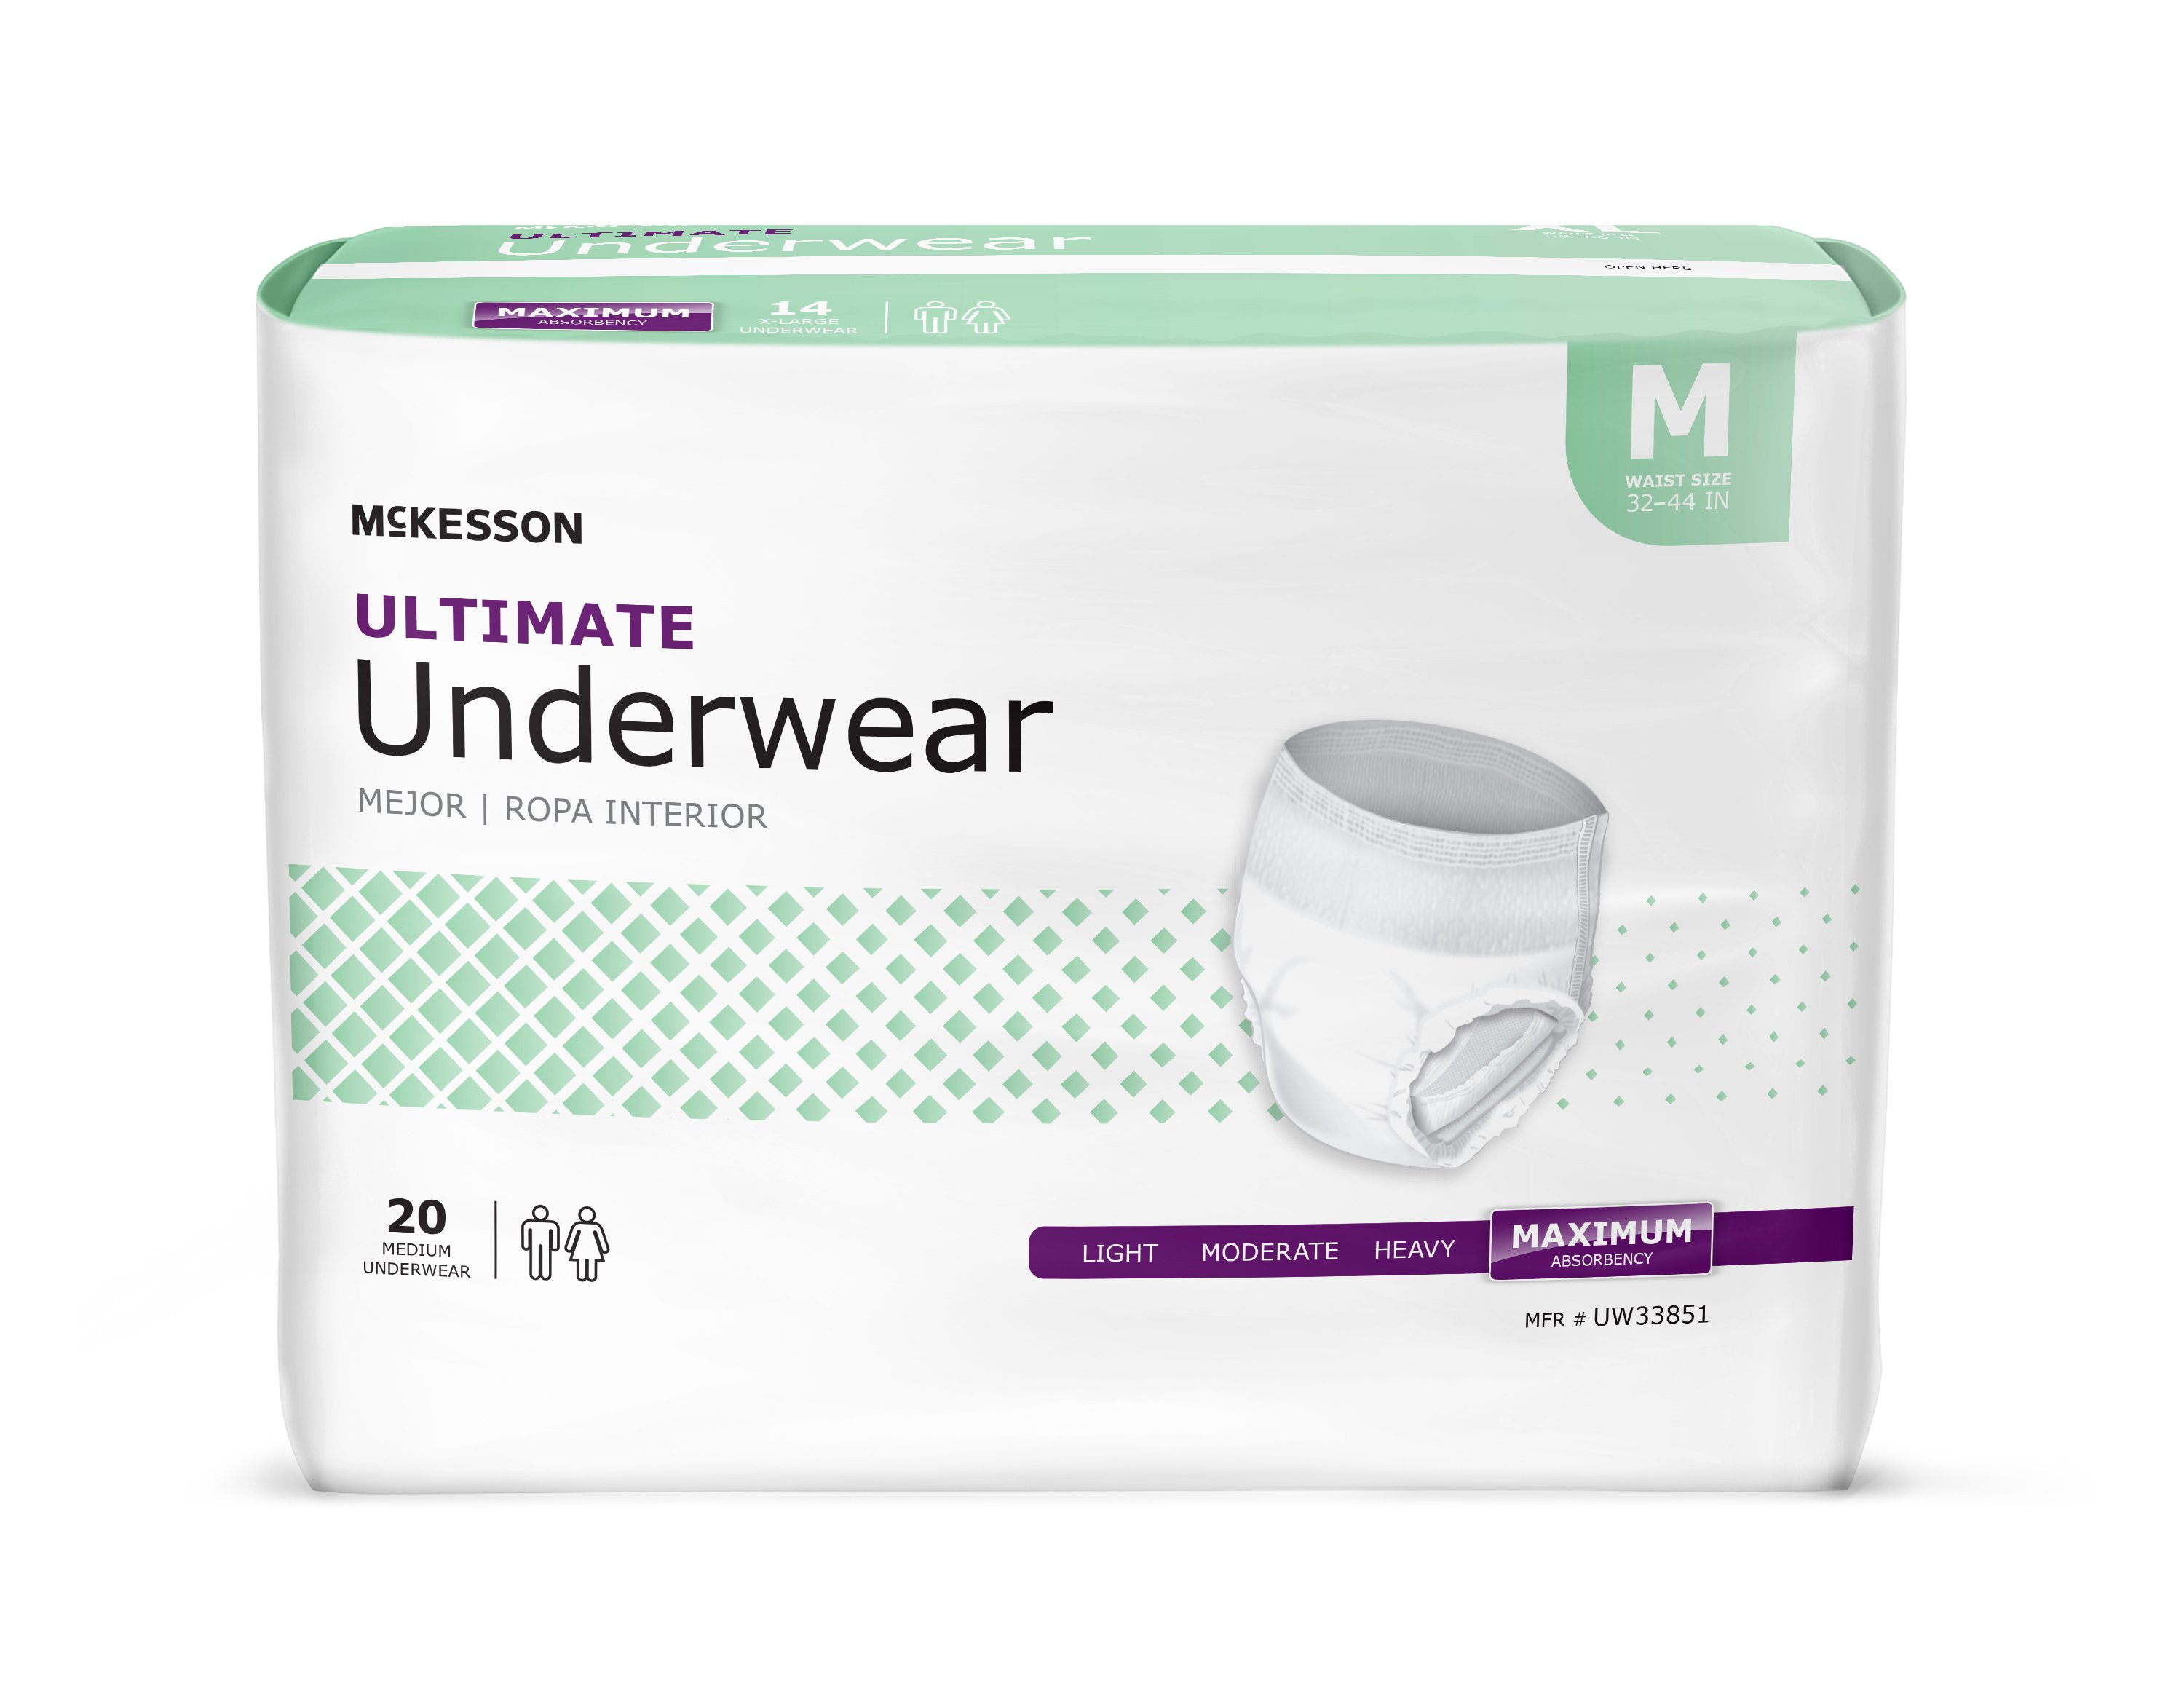 McKesson Adult Underwear Pull On Medium Disposable Heavy Absorbency, UW33851 - Pack of 20